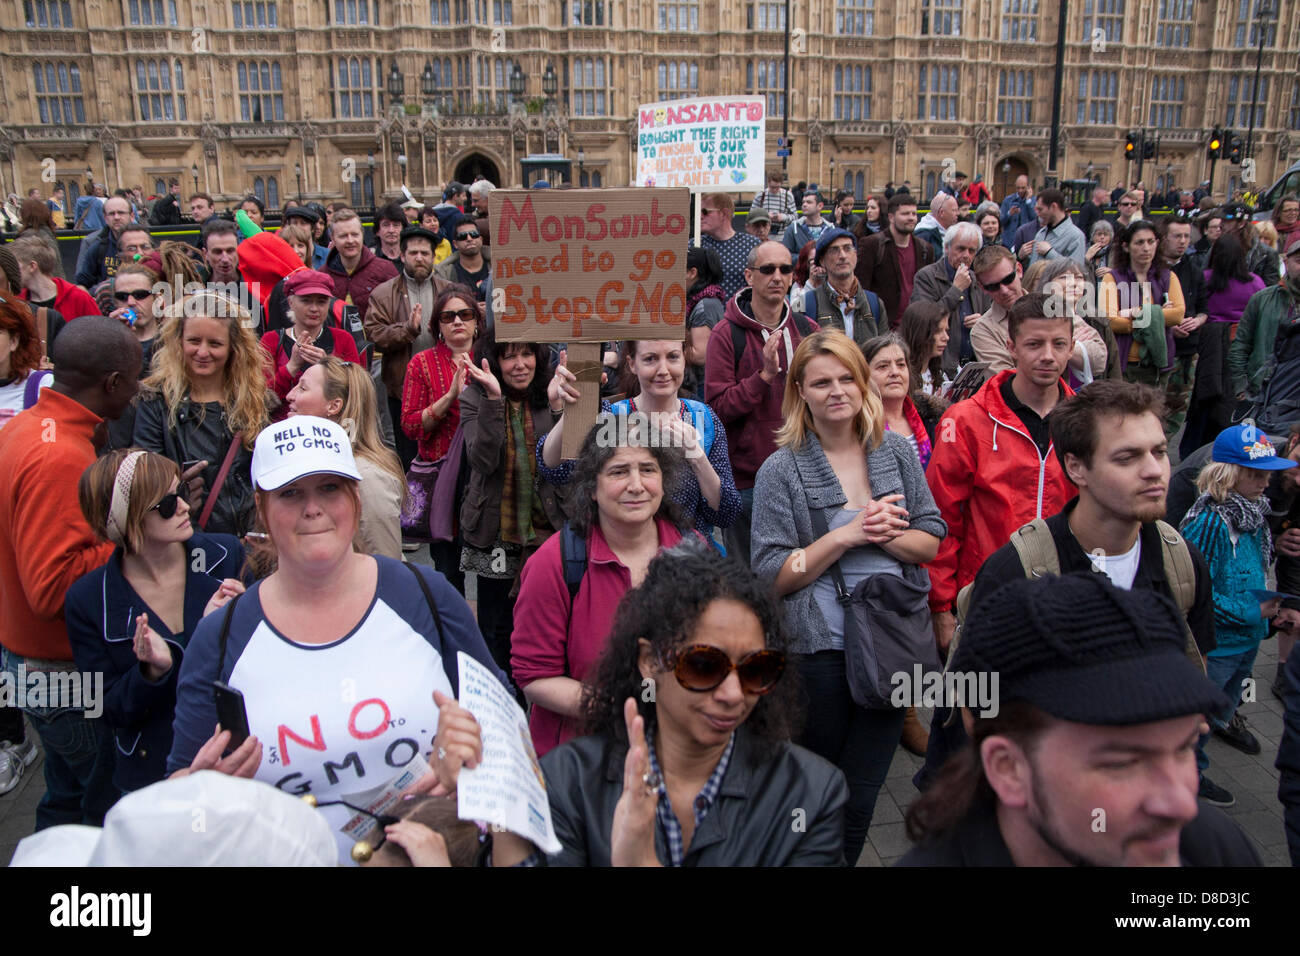 2013-05-25 Westminster, London. Protesters demonstrating outside Parliament against genetically modified crops, Stock Photo